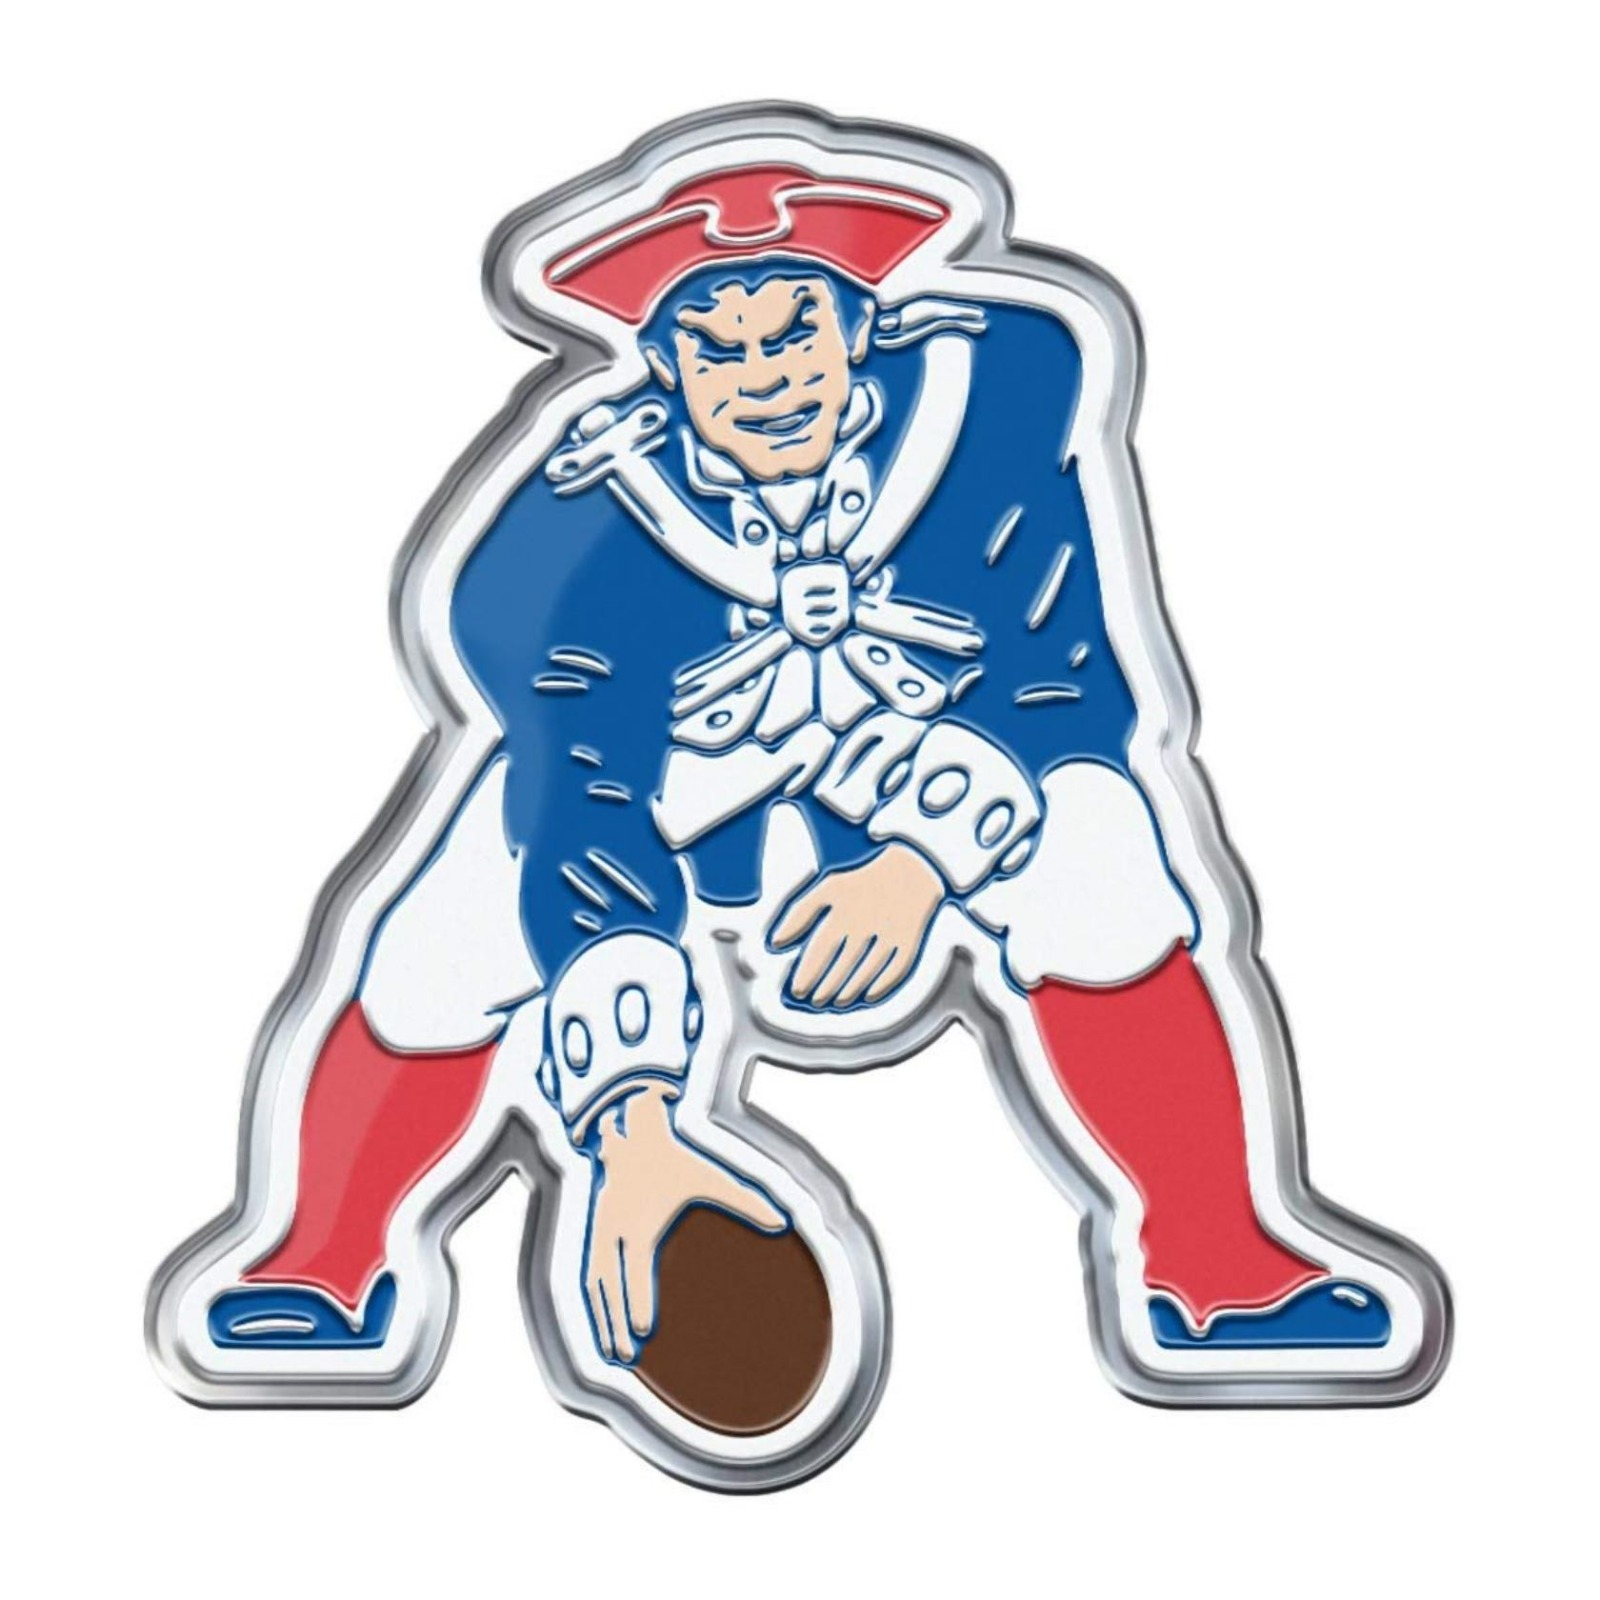 Patriots clipart alternate. Details about new england